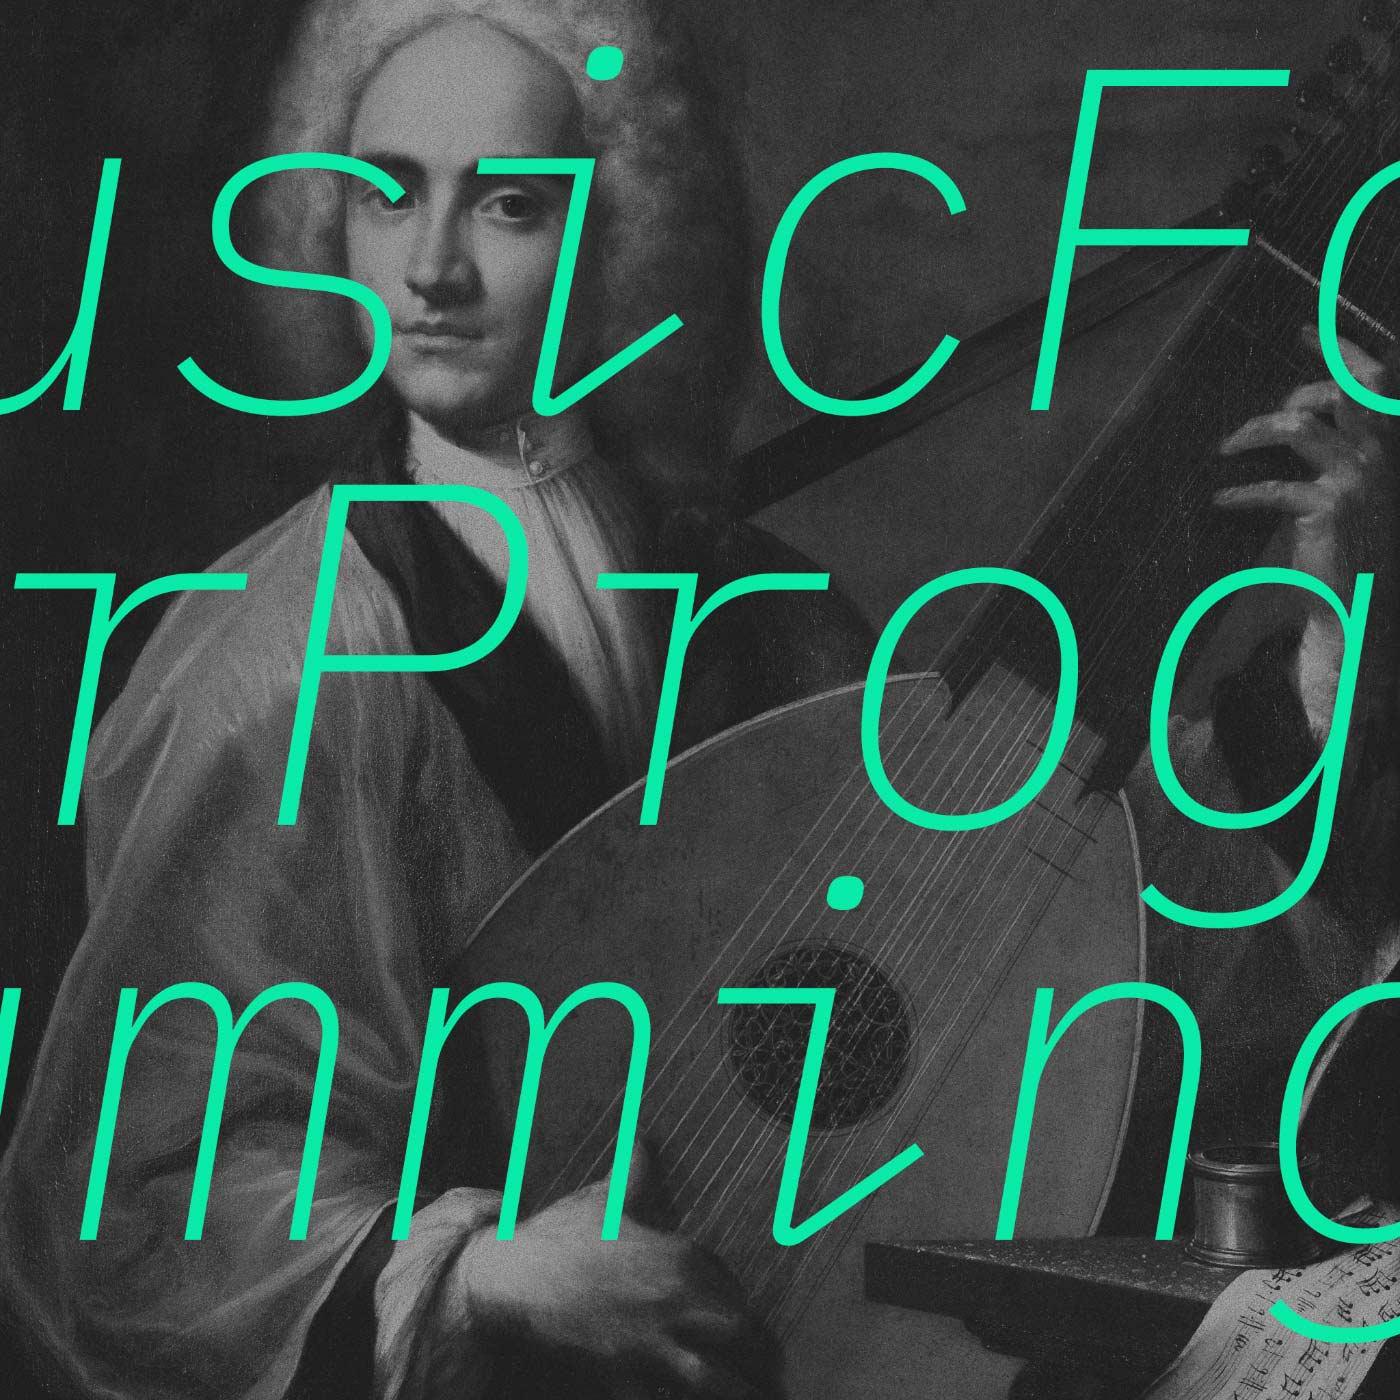 https://i2.wp.com/musicforprogramming.net/img/folder.jpg